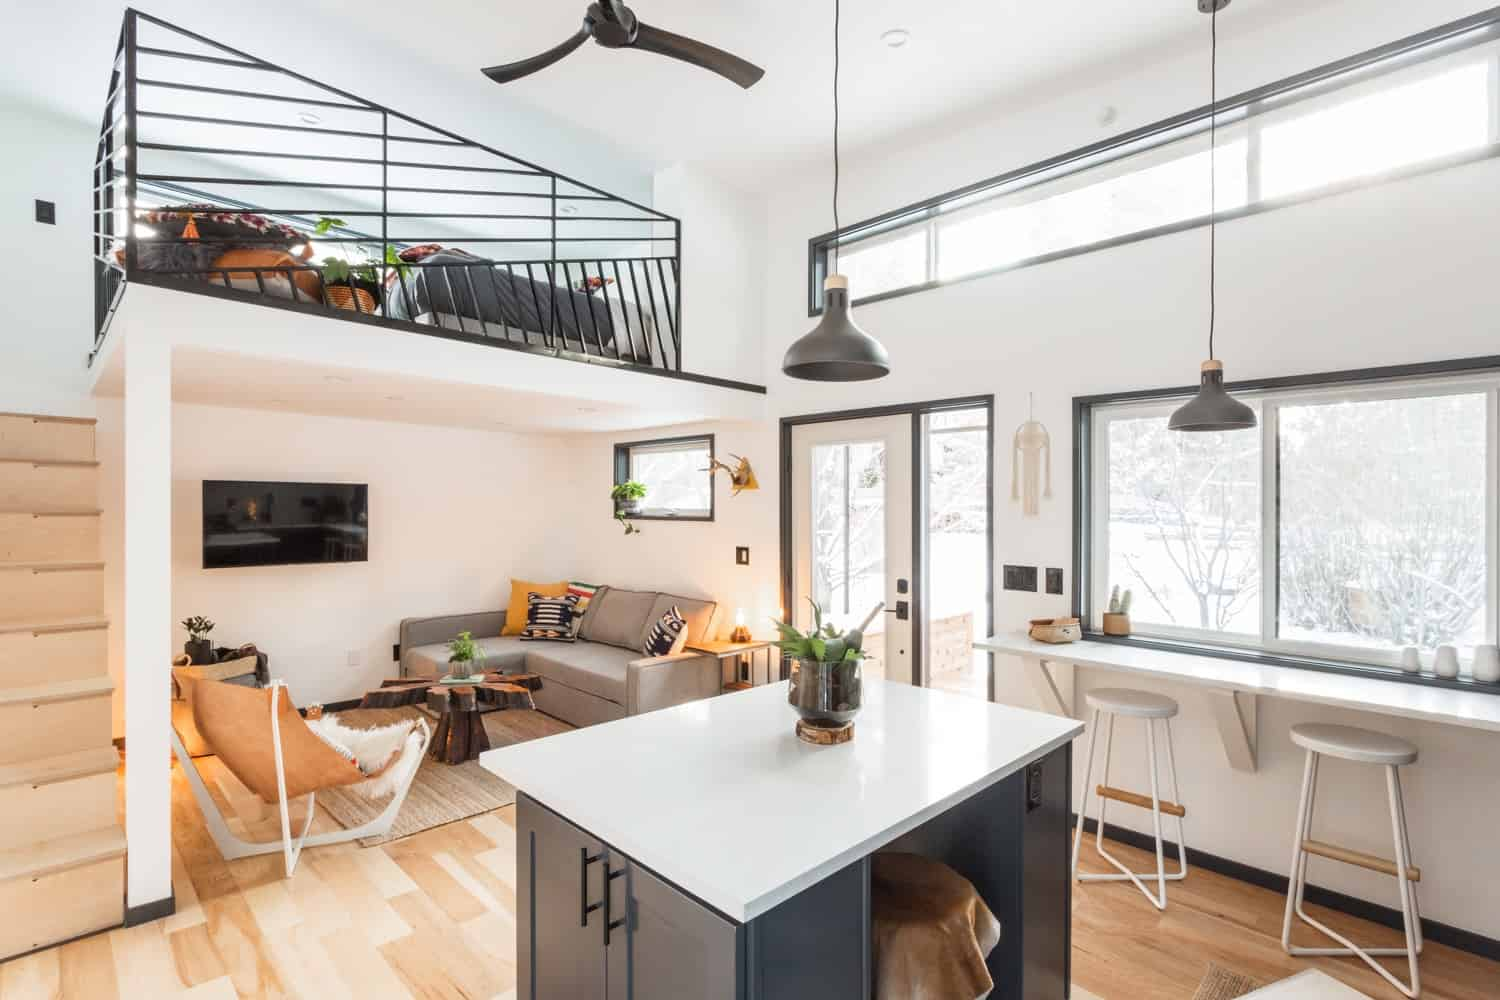 Tiny Home Design: Hiatus Tiny House Shows Off Superb Design